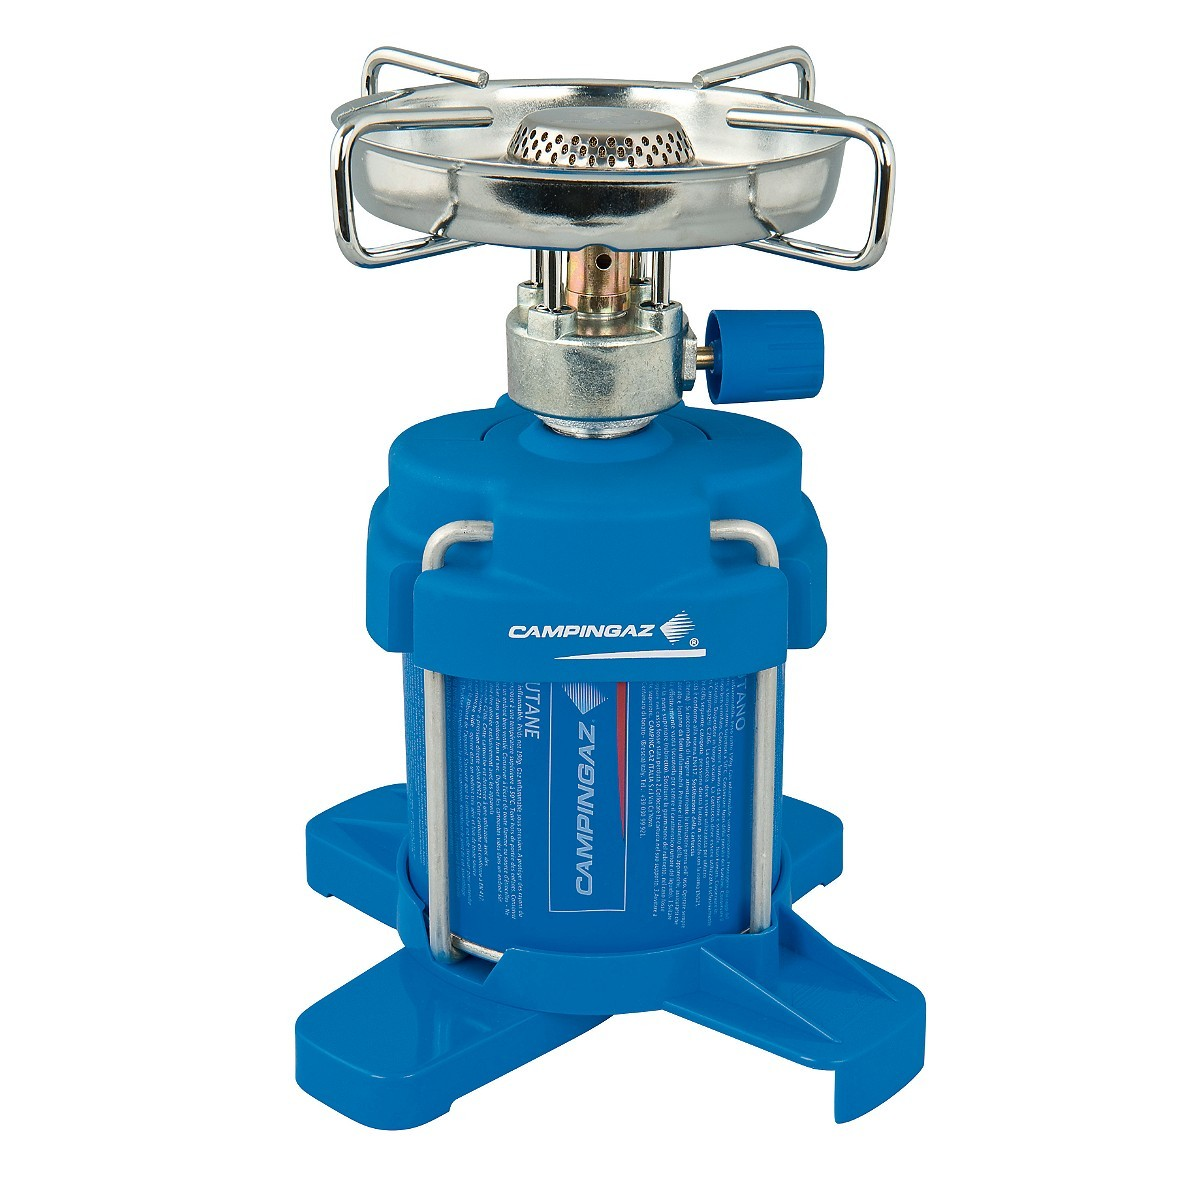 campingaz bleuet 206 plus camping stove by campingaz for  u00a3